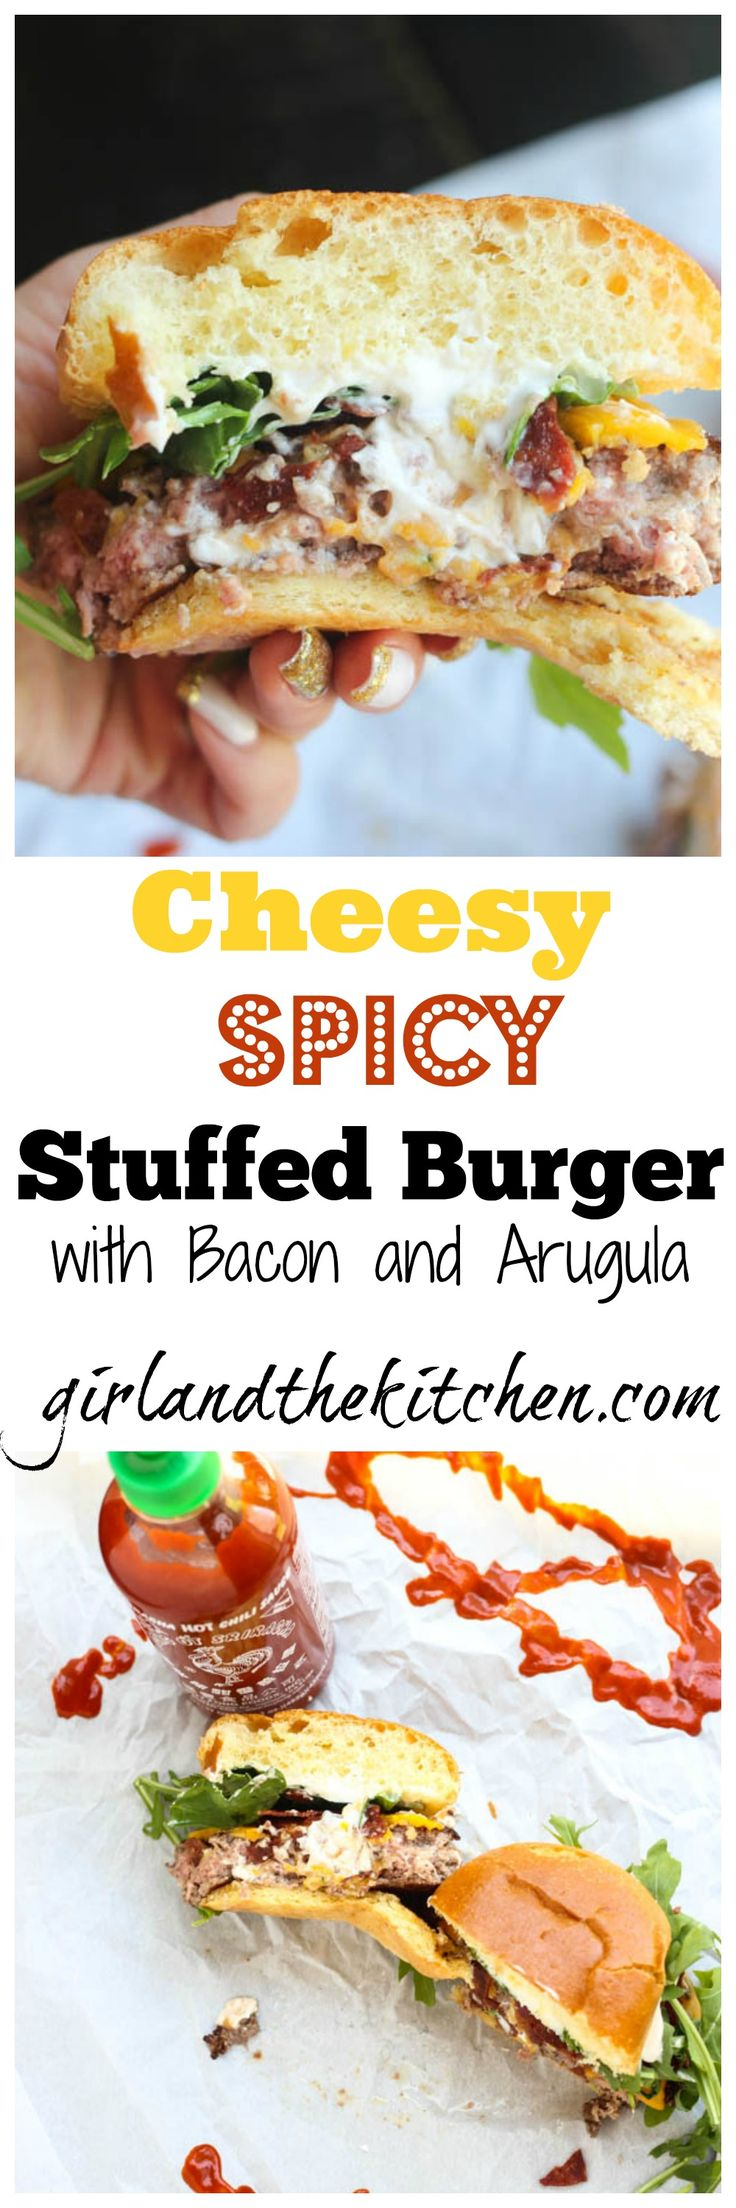 Stuffed Burger Recipes on Pinterest | Burger Recipes, Cheese Stuffed ...